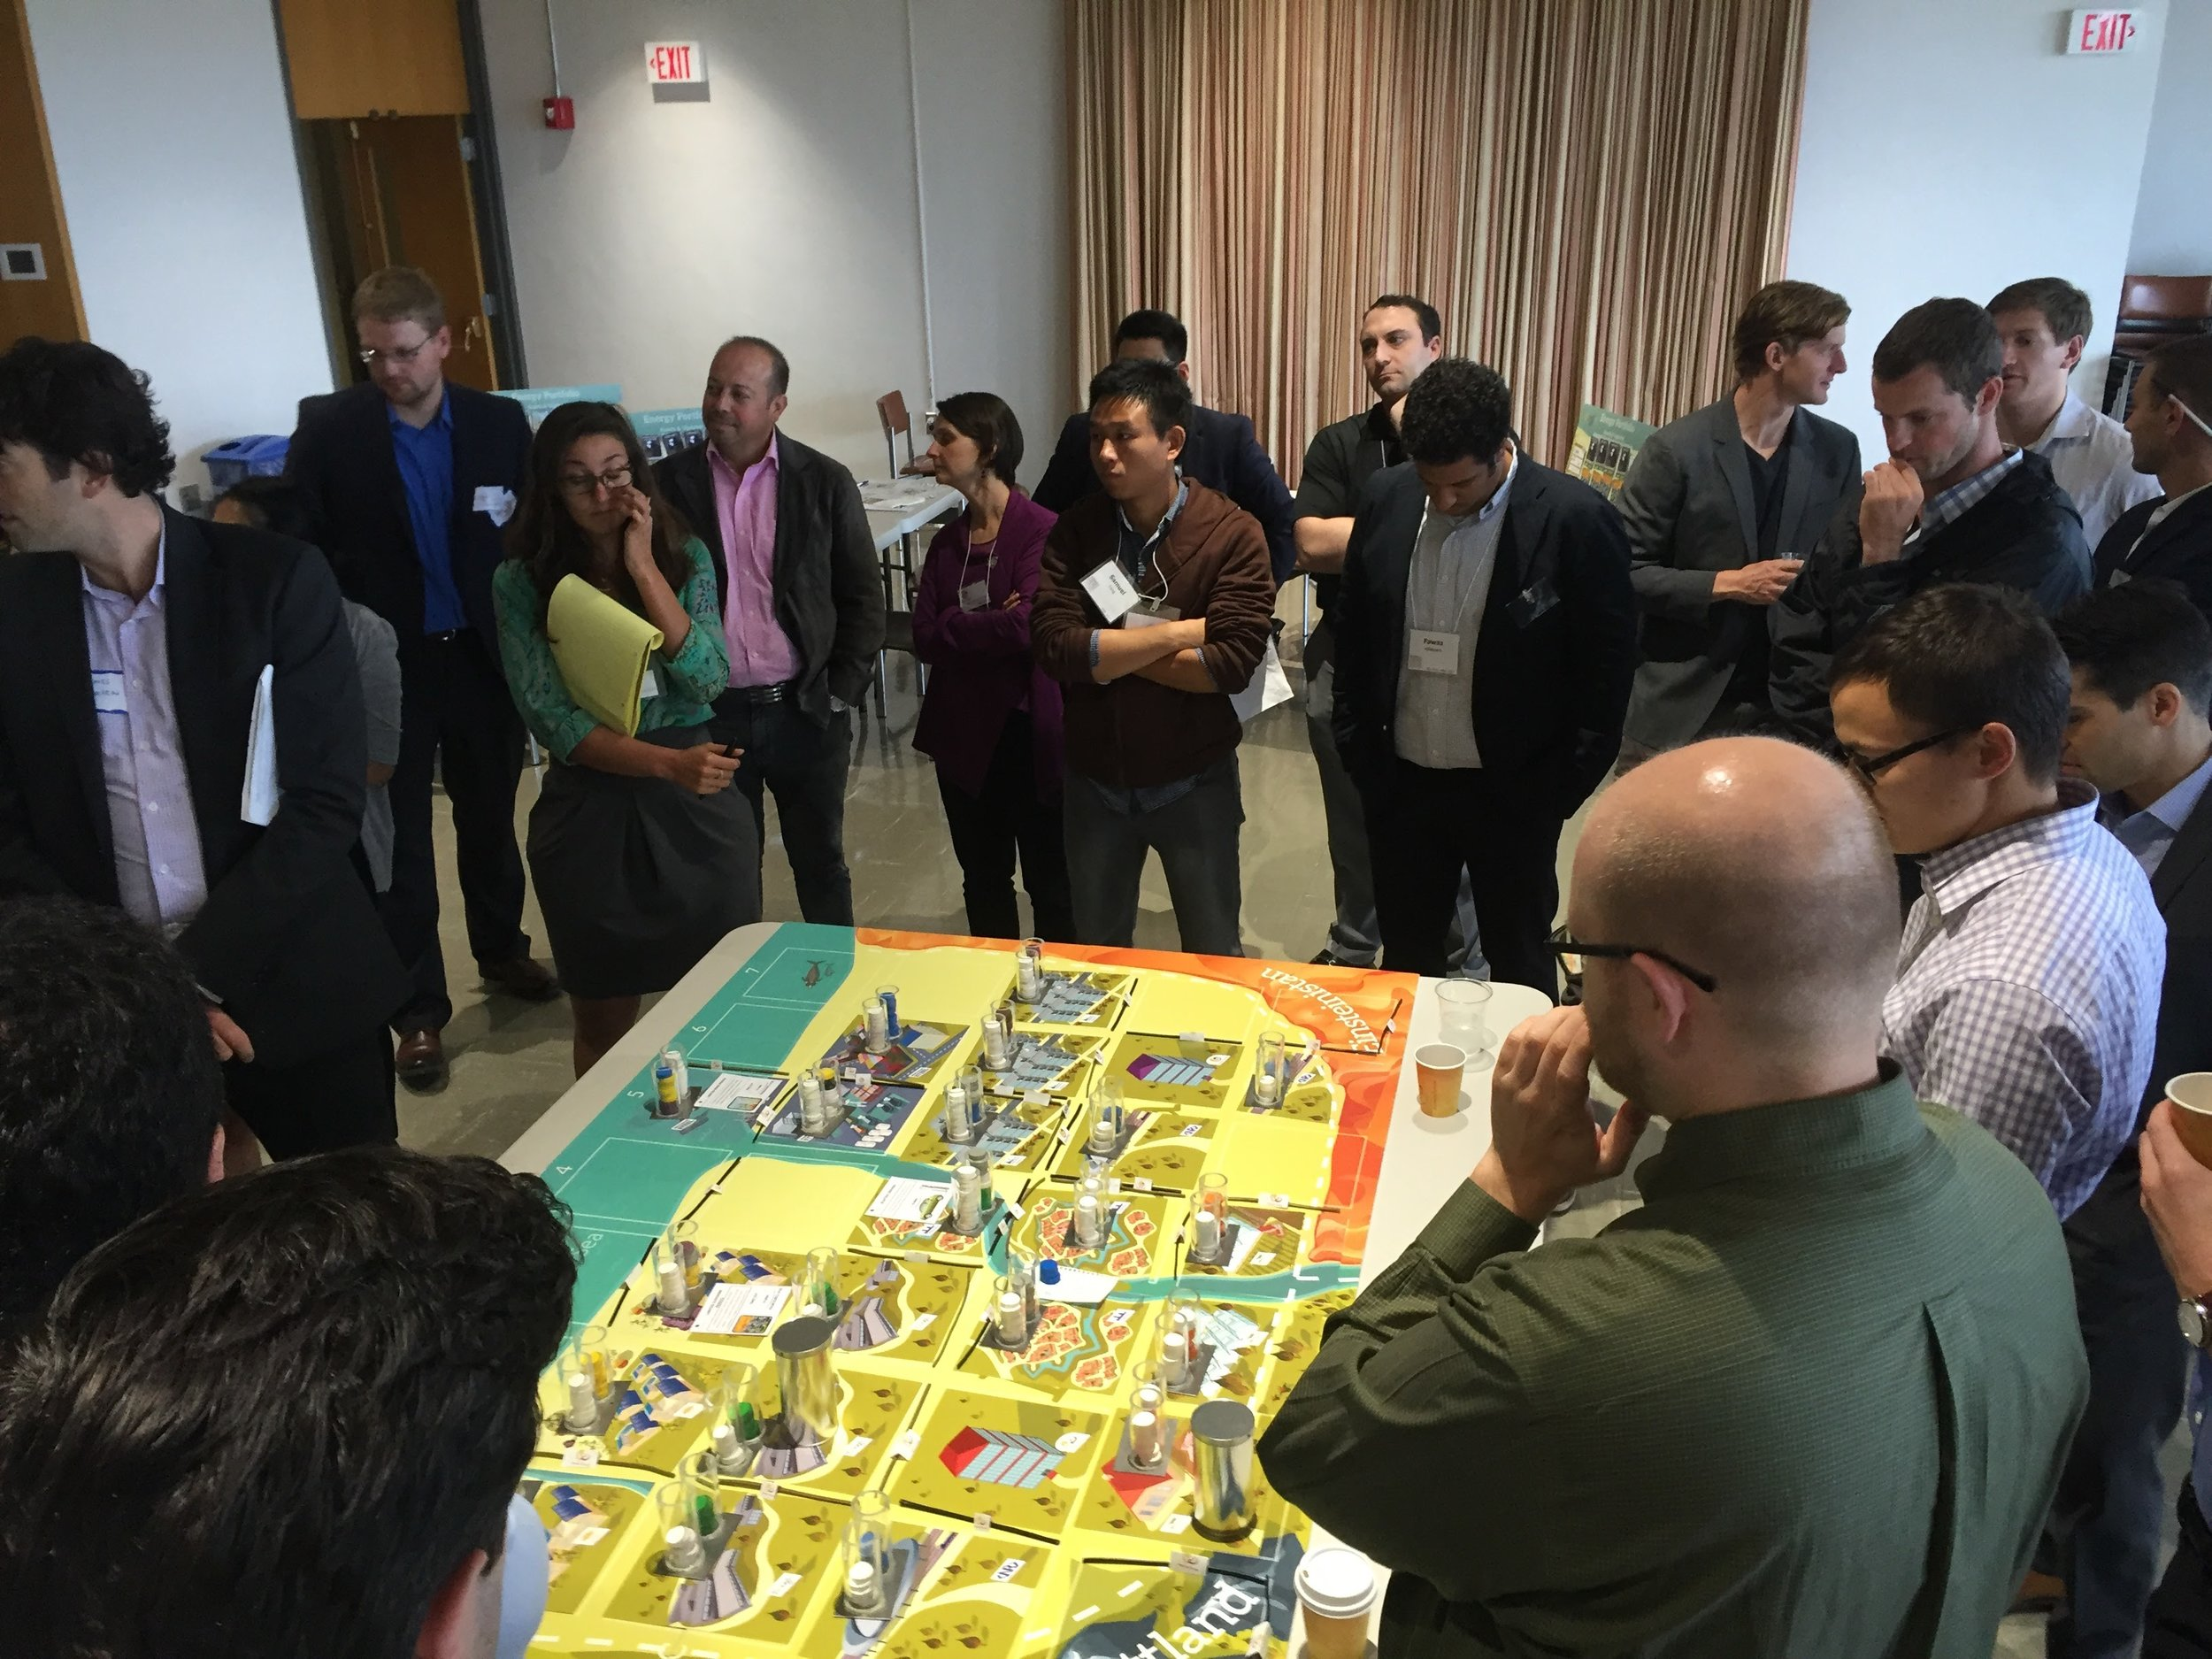 Participants examining the town of 'Newtonia' and its energy needs.